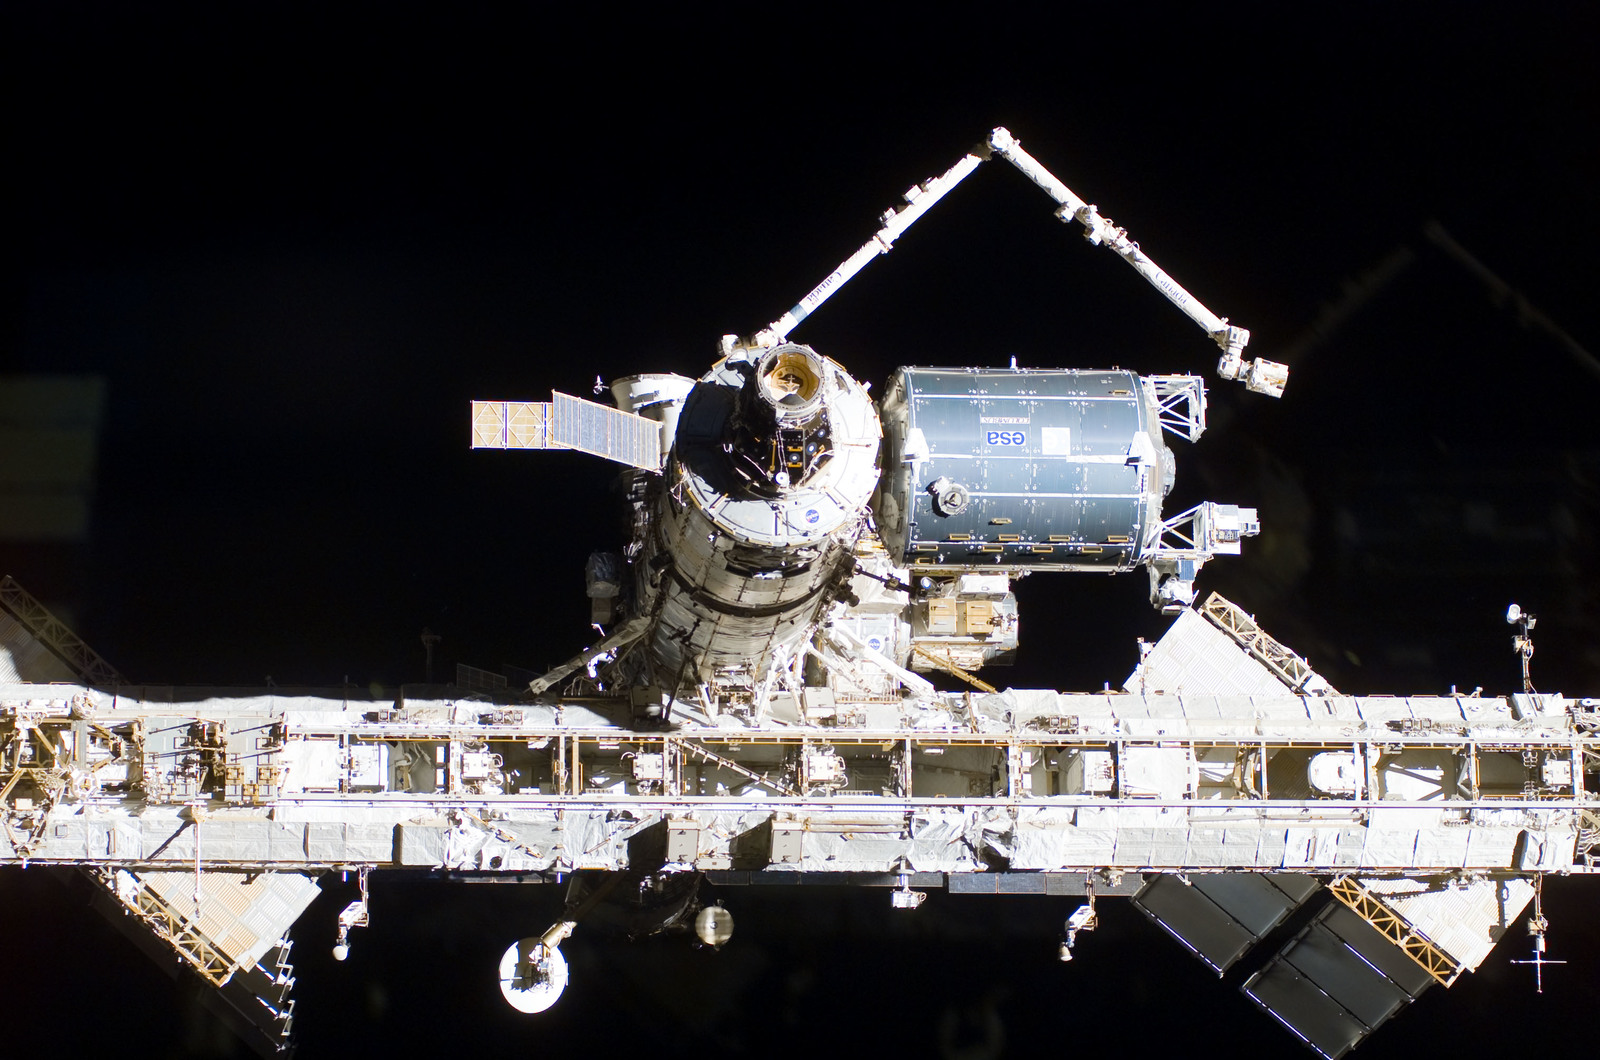 S122E009950 - STS-122 - Flyaround view of ISS after STS-122 Undocking